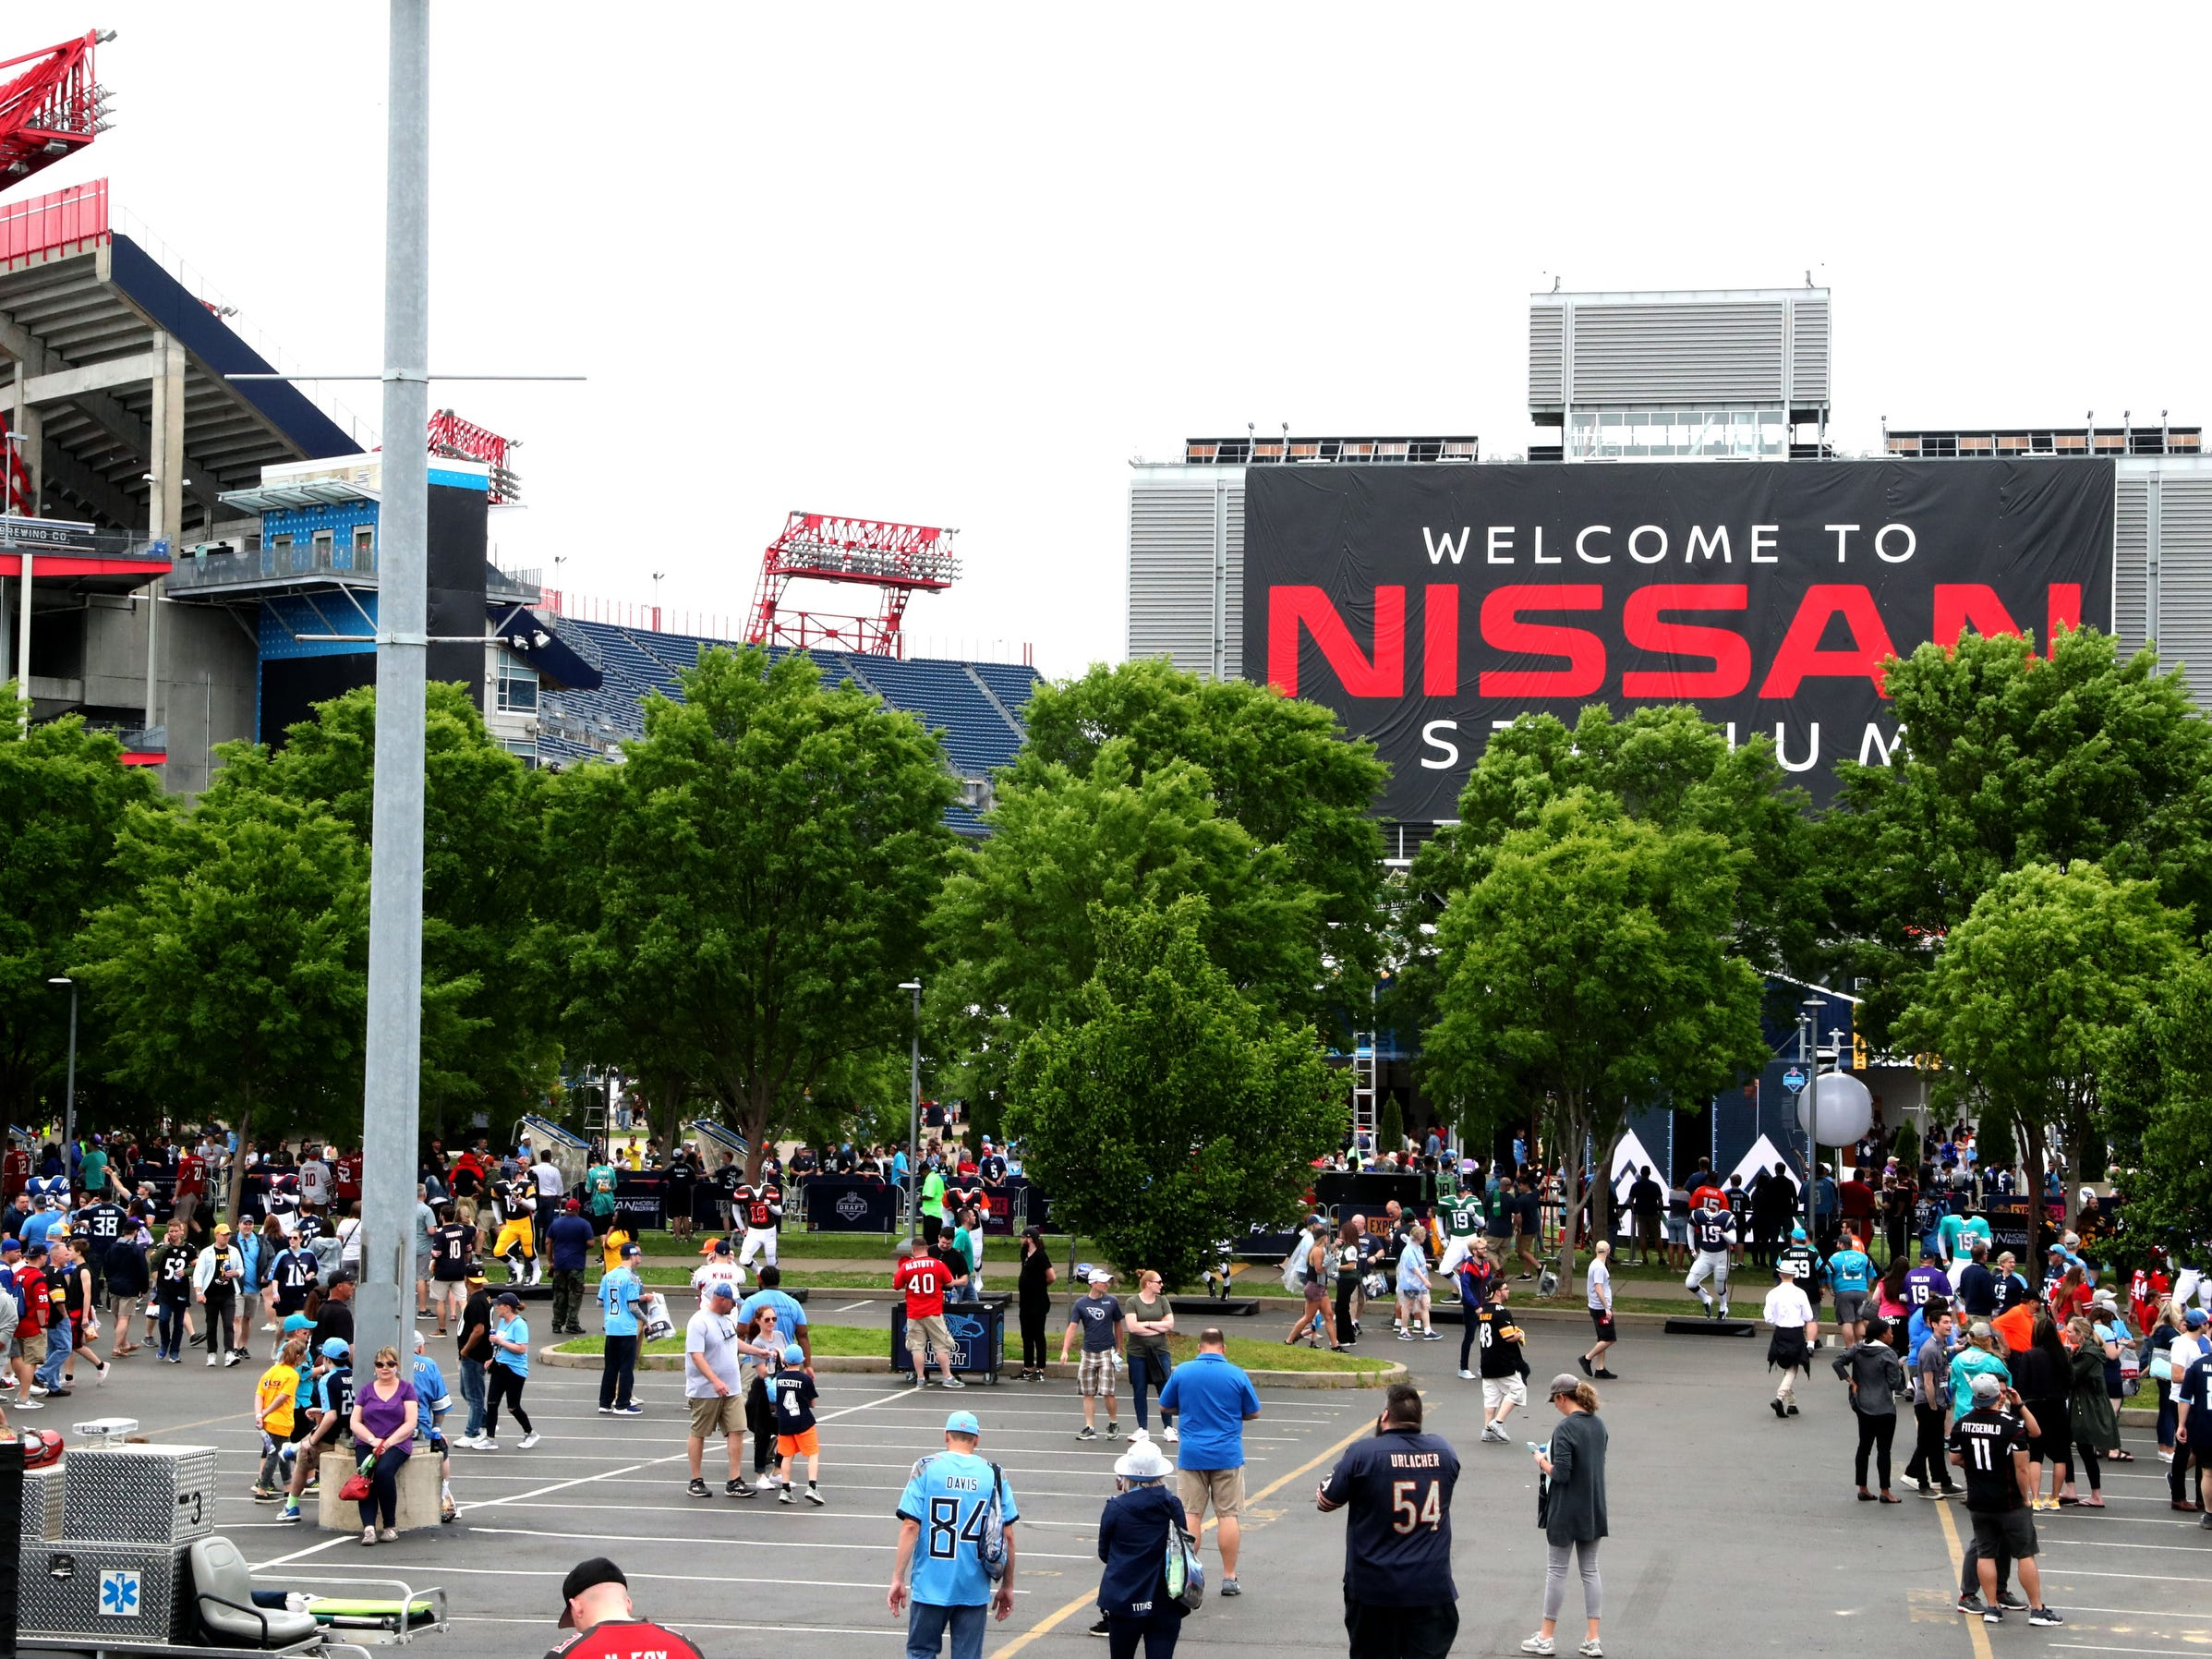 People wander around in the NFL Draft Experience, at Nissan Stadium on Thursday, April 25, 2019, in Nashville, Tennessee.